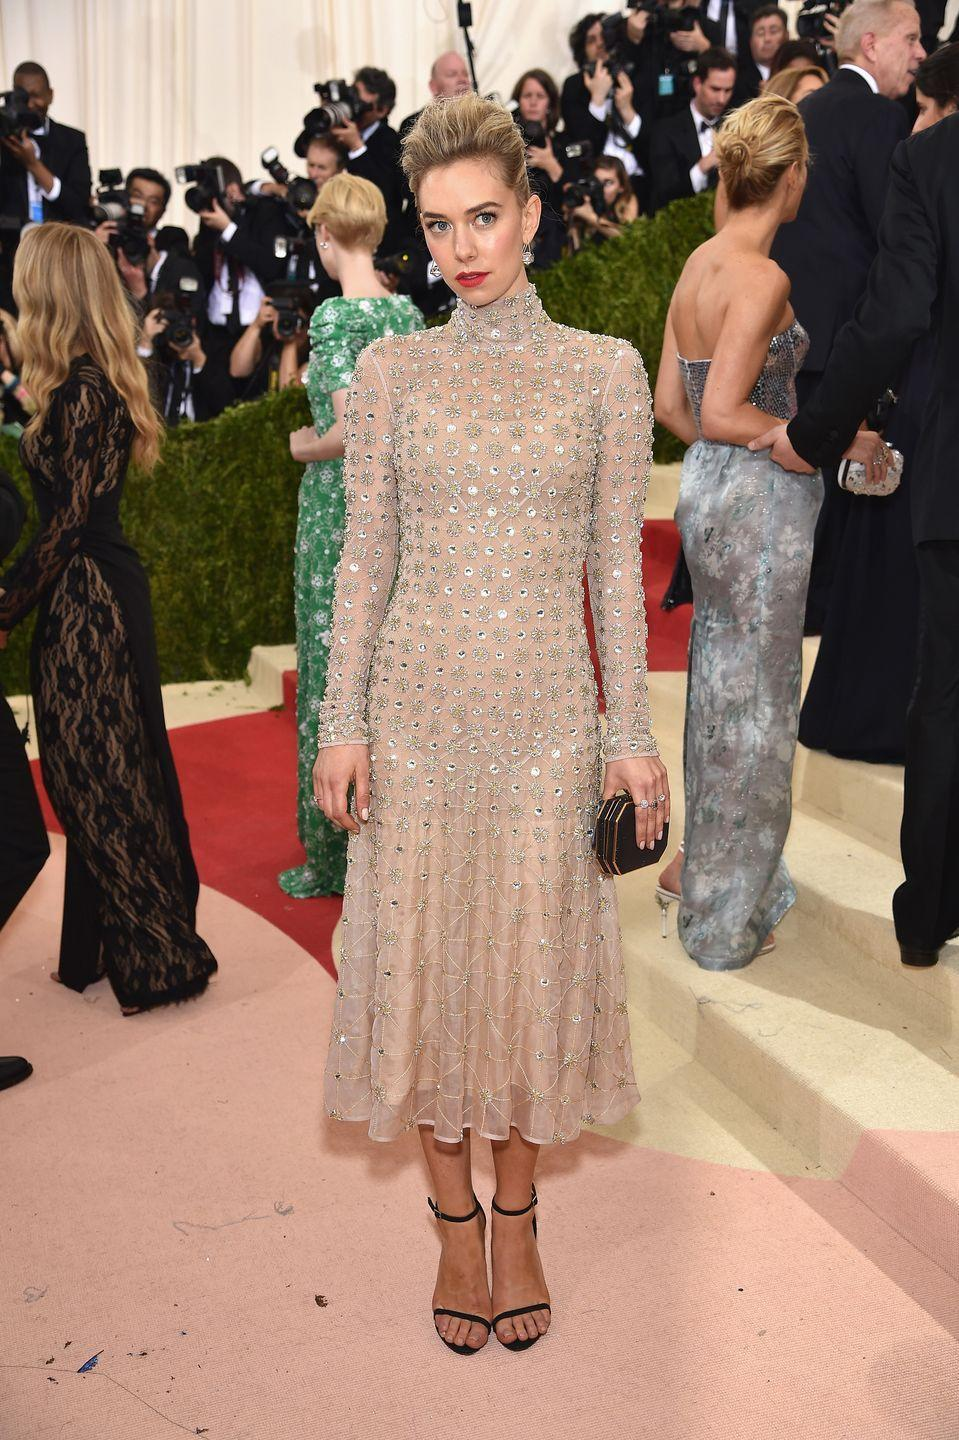 <p>In a dress by Temperley London at the Manus x Machina event at The Met.</p>